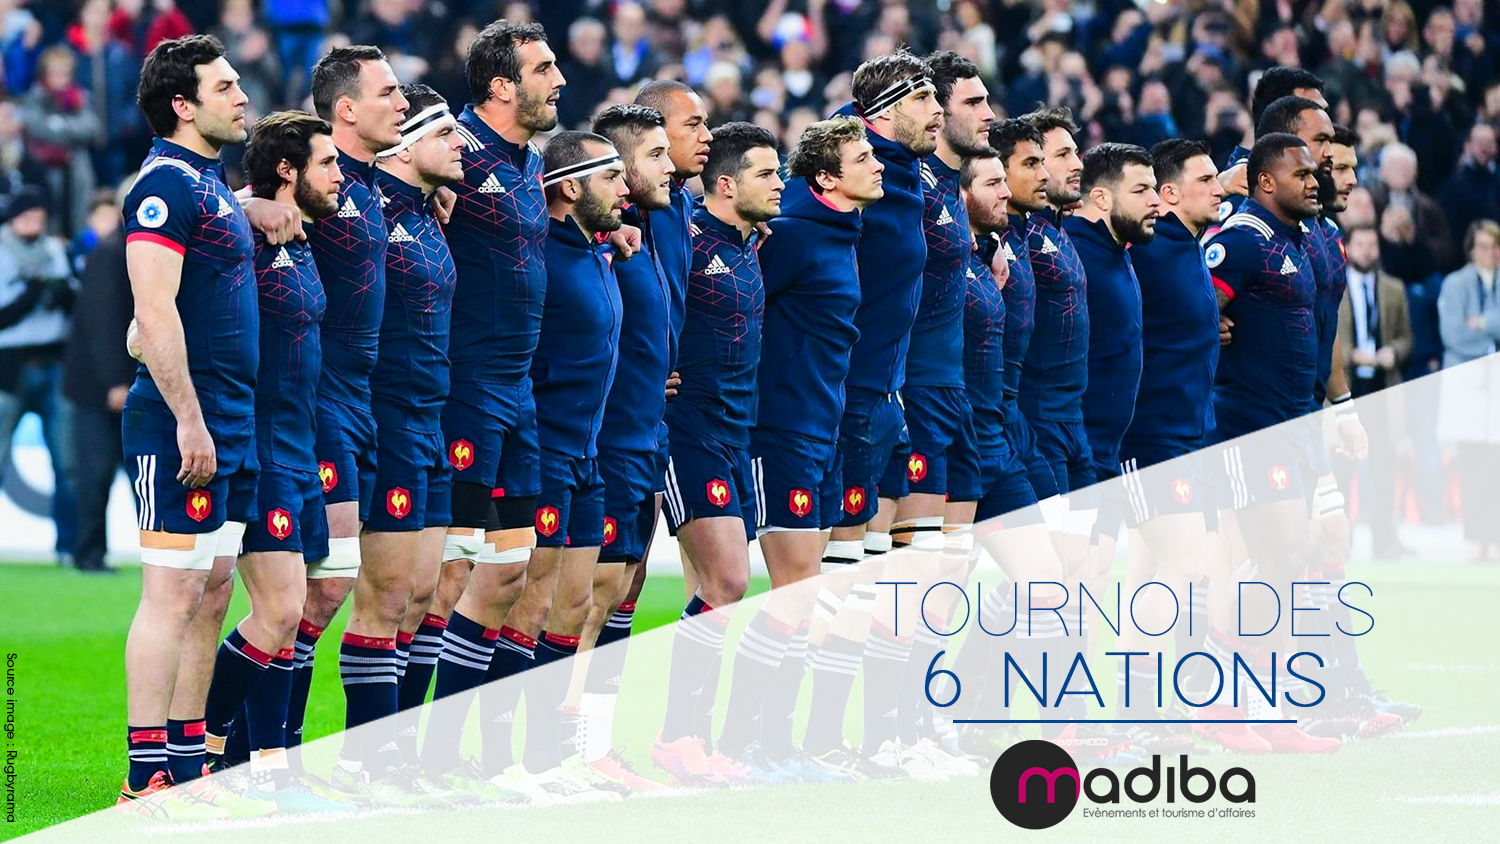 ../uploads/tournoi-des-6-nations-equipe-de-france-team-building-agence-evenementiel-madiba.jpg